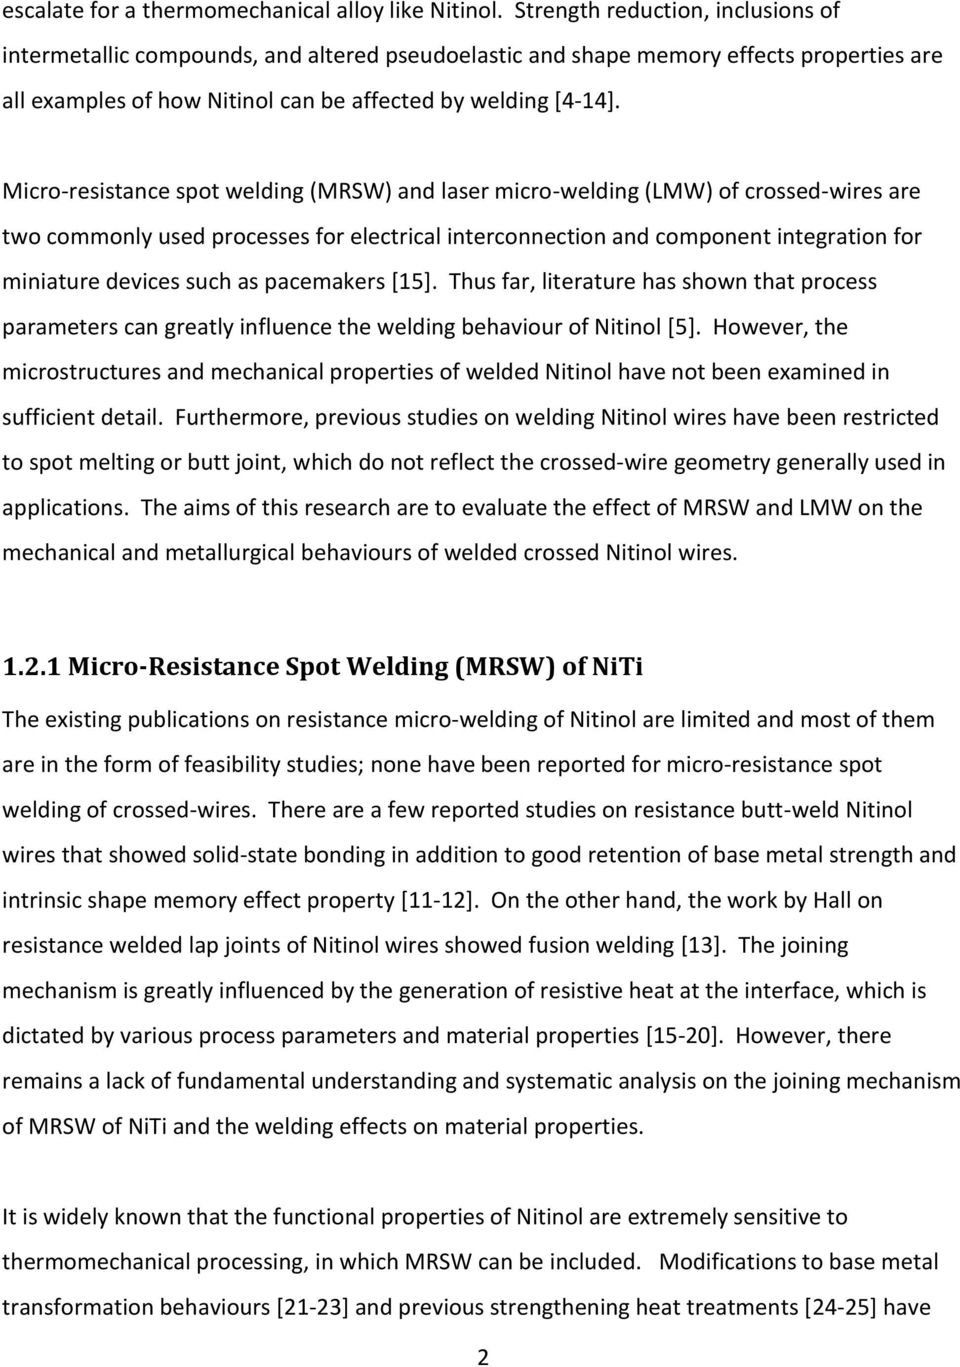 hight resolution of micro resistance spot welding mrsw and laser micro welding lmw